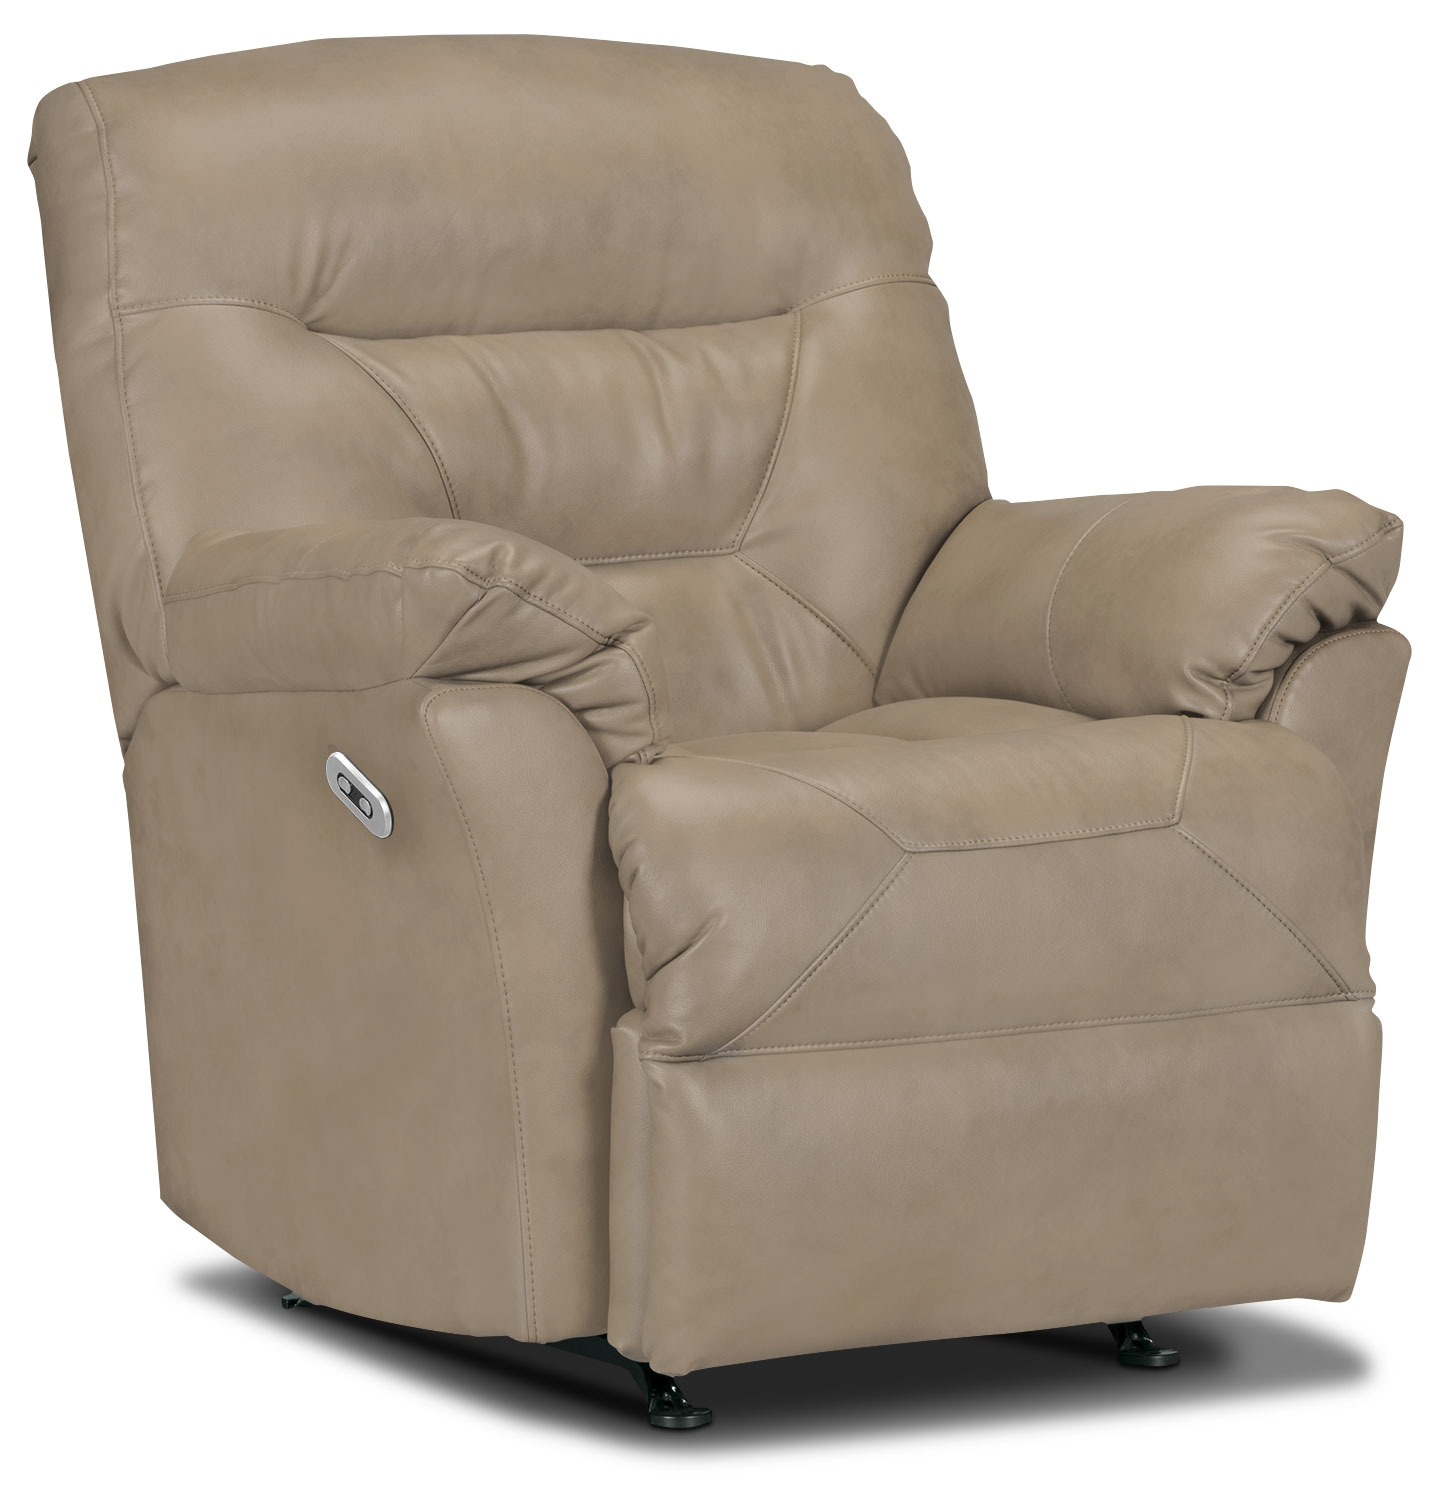 Designed2B Recliner 4579 Genuine Leather Power Recliner - Putty